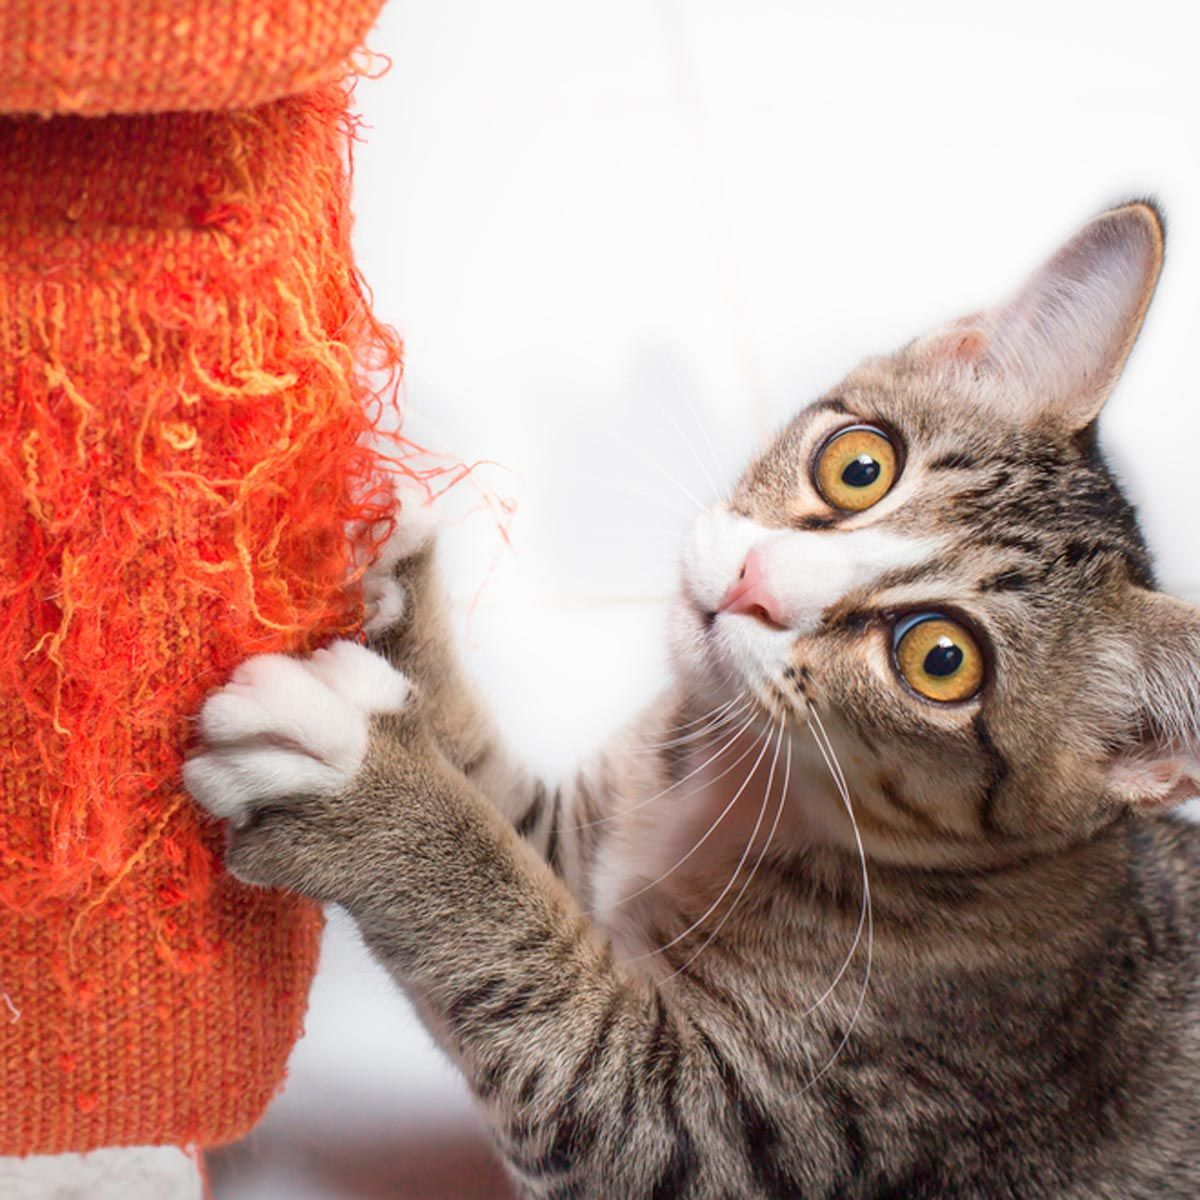 Here S How To Keep A Cat From Scratching The Furniture Carapiny Na Mebeli Kot Koshki